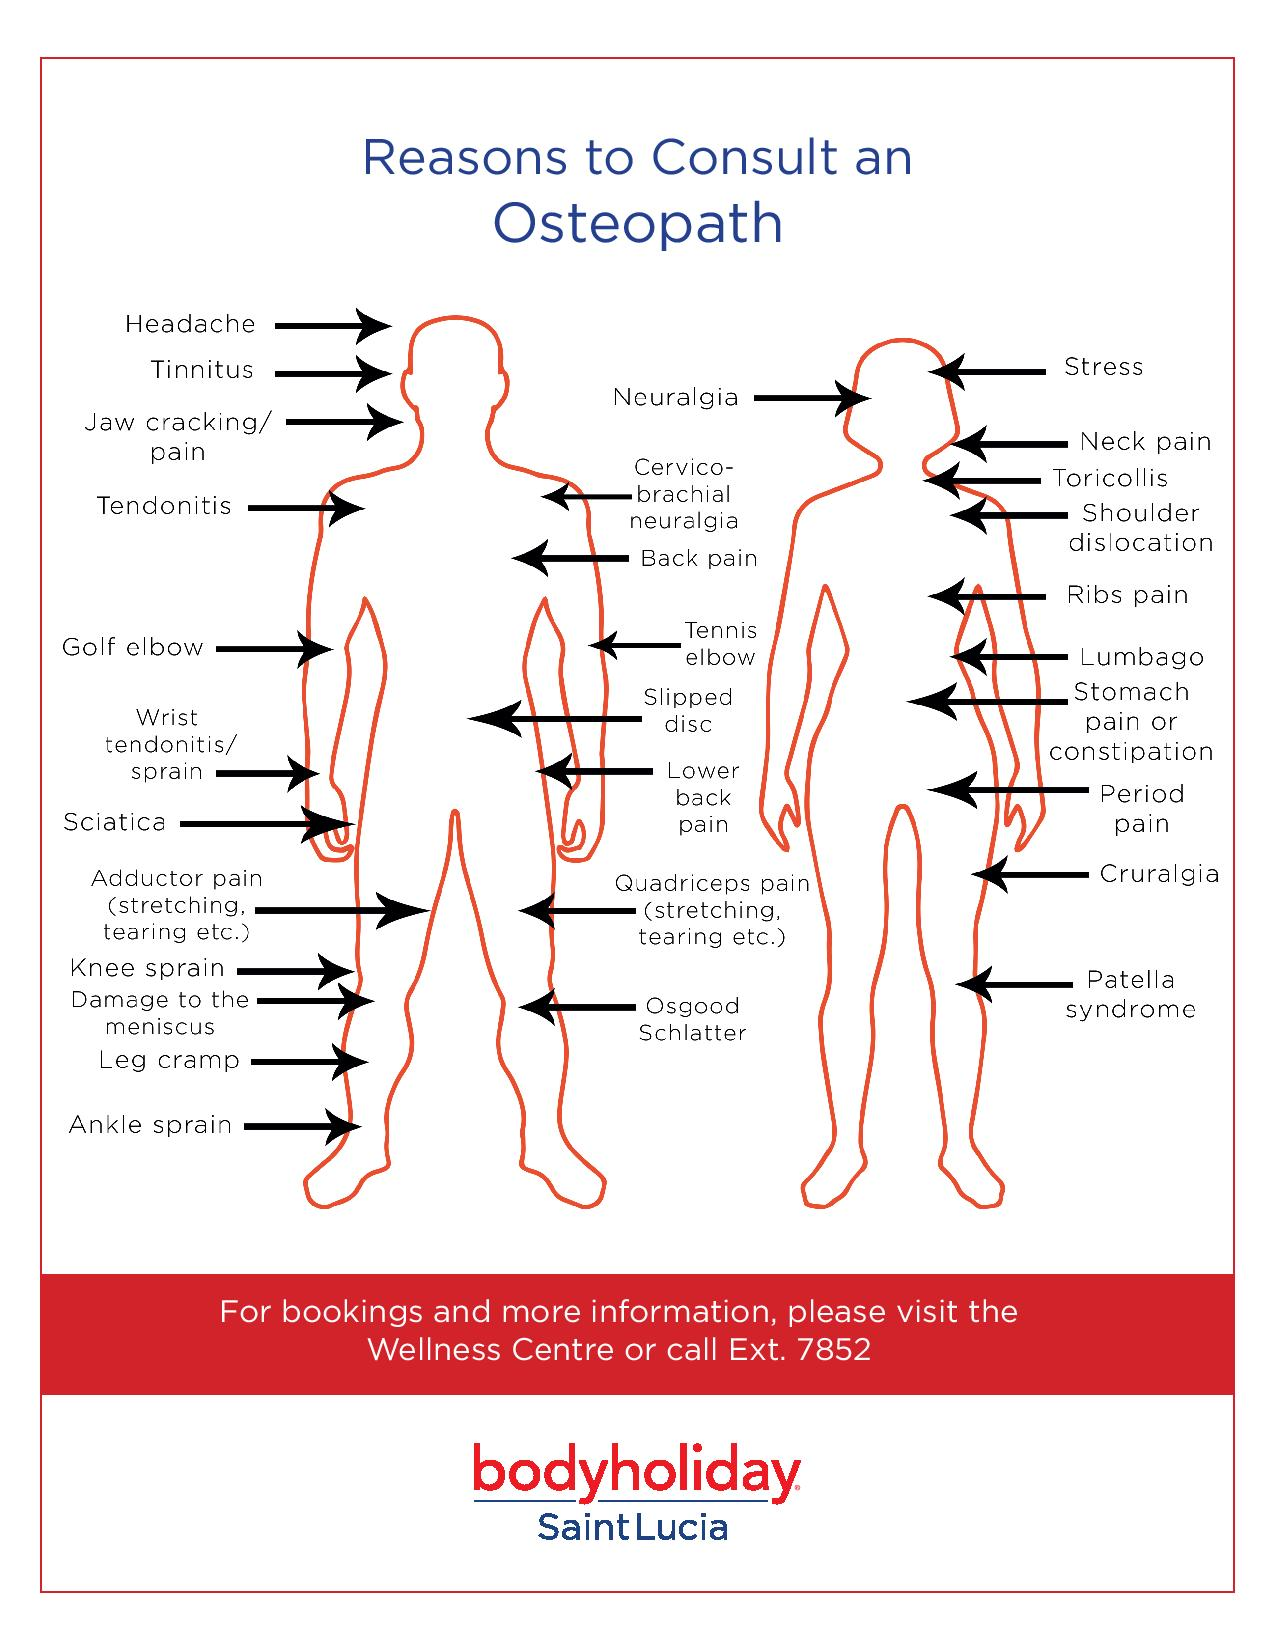 hight resolution of osteopath chart and reasons to visit them at bodyholiday